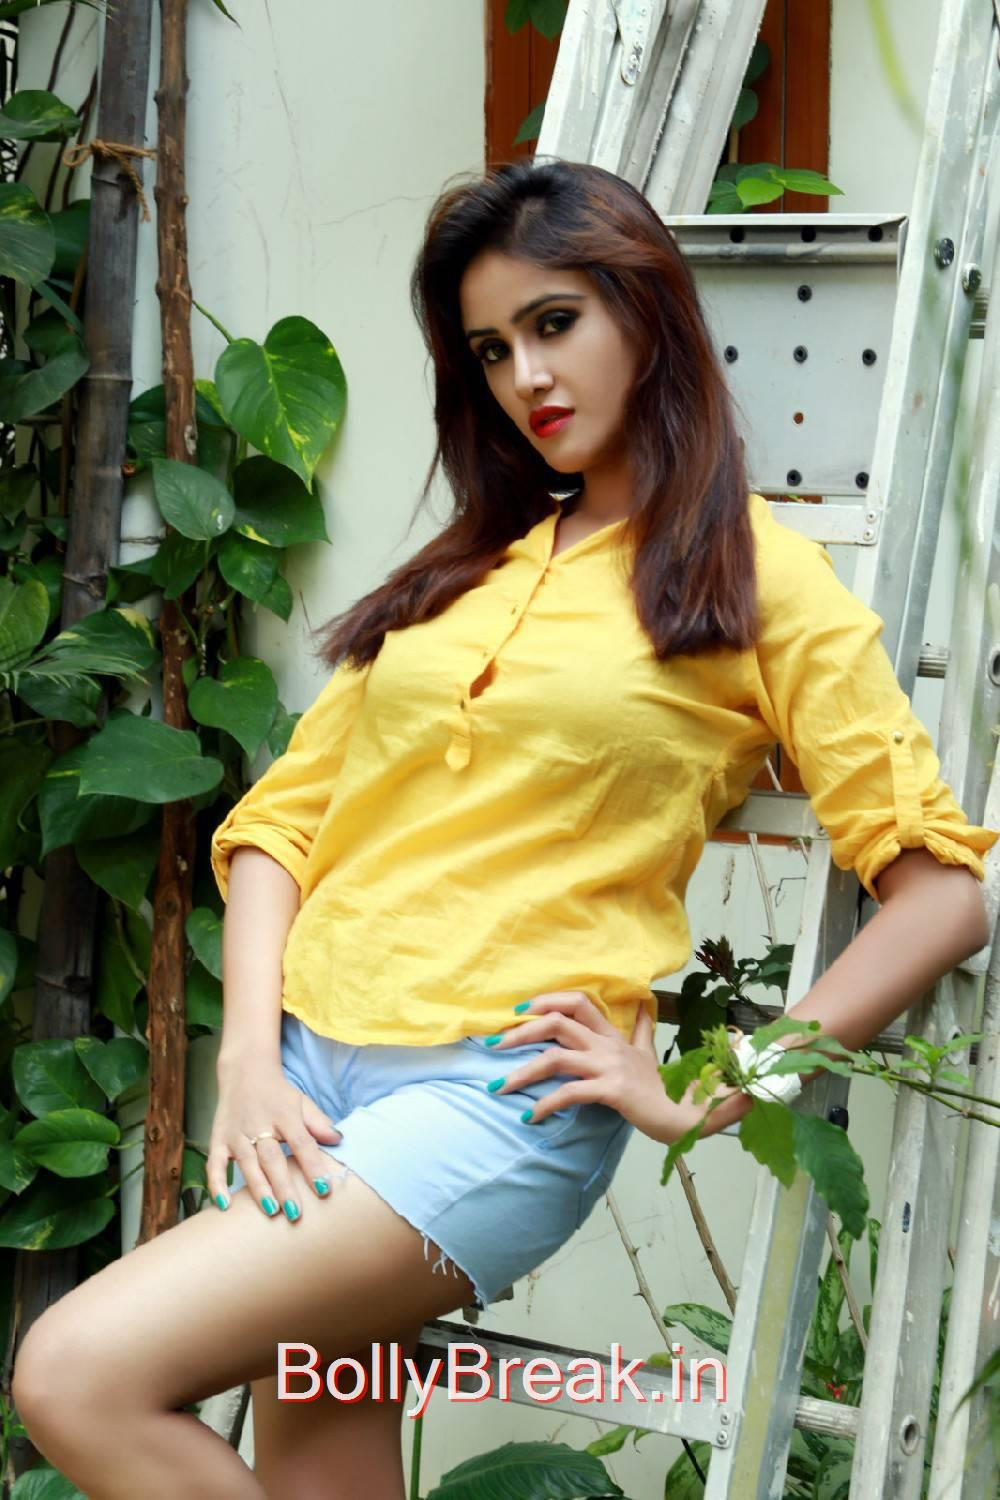 Sony Charishta Unseen Stills, Sony Charishta in Denim Shorts - Hot Photoshoot Images in Yellow Shirt